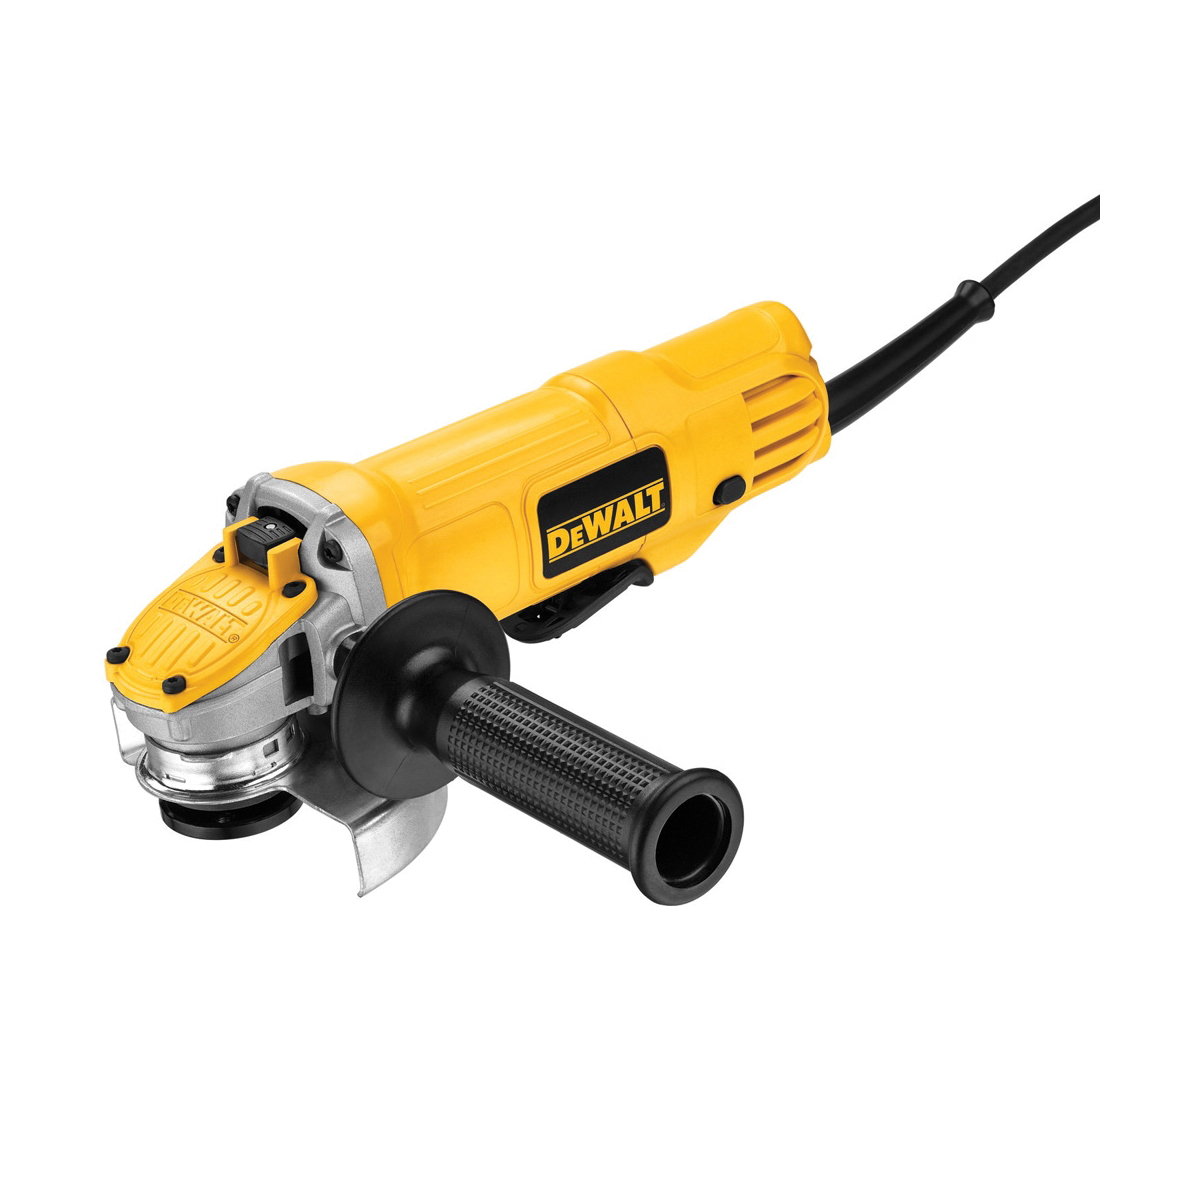 DeWALT® DWE4120 Small Angle Grinder, 4-1/2 in Dia Wheel, 5/8-11 Arbor/Shank, 120 VAC, For Wheel: Quick-Change™, Yellow, No Dust Management, Lock-On Paddle Switch Switch, Tool Only